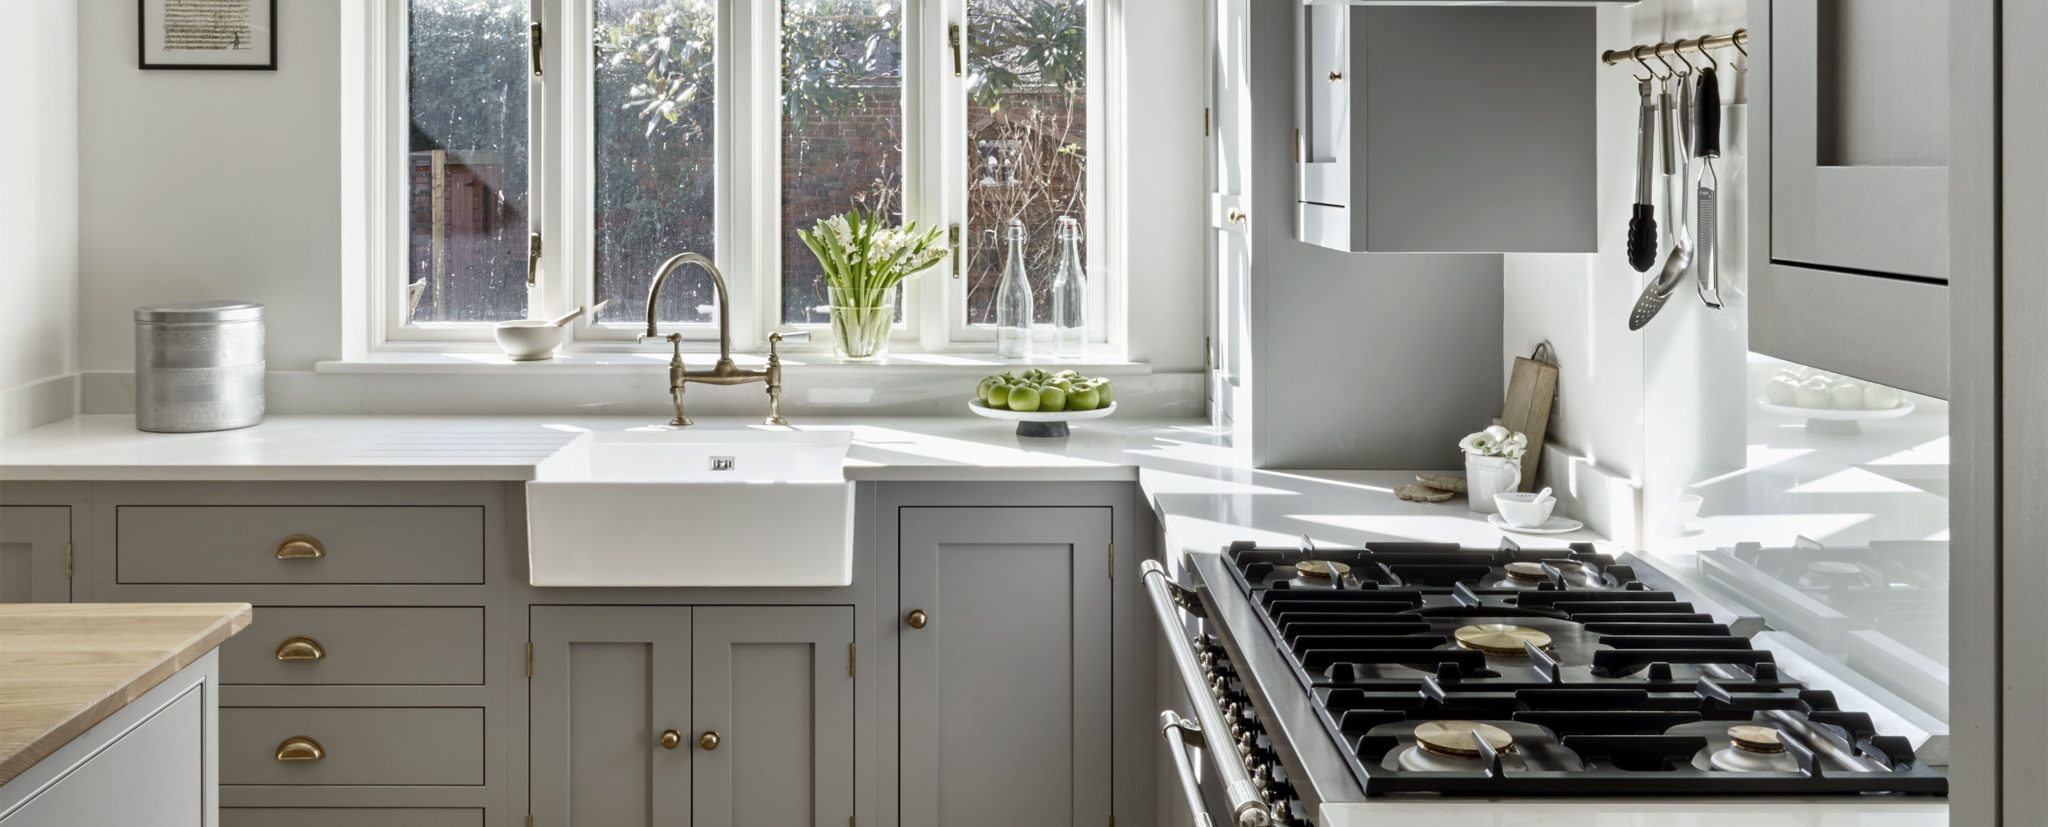 Country kitchen Brayer bespoke design with range cooker and butlers' sink. Light blue grey kitchen cabinets with antique brass handles